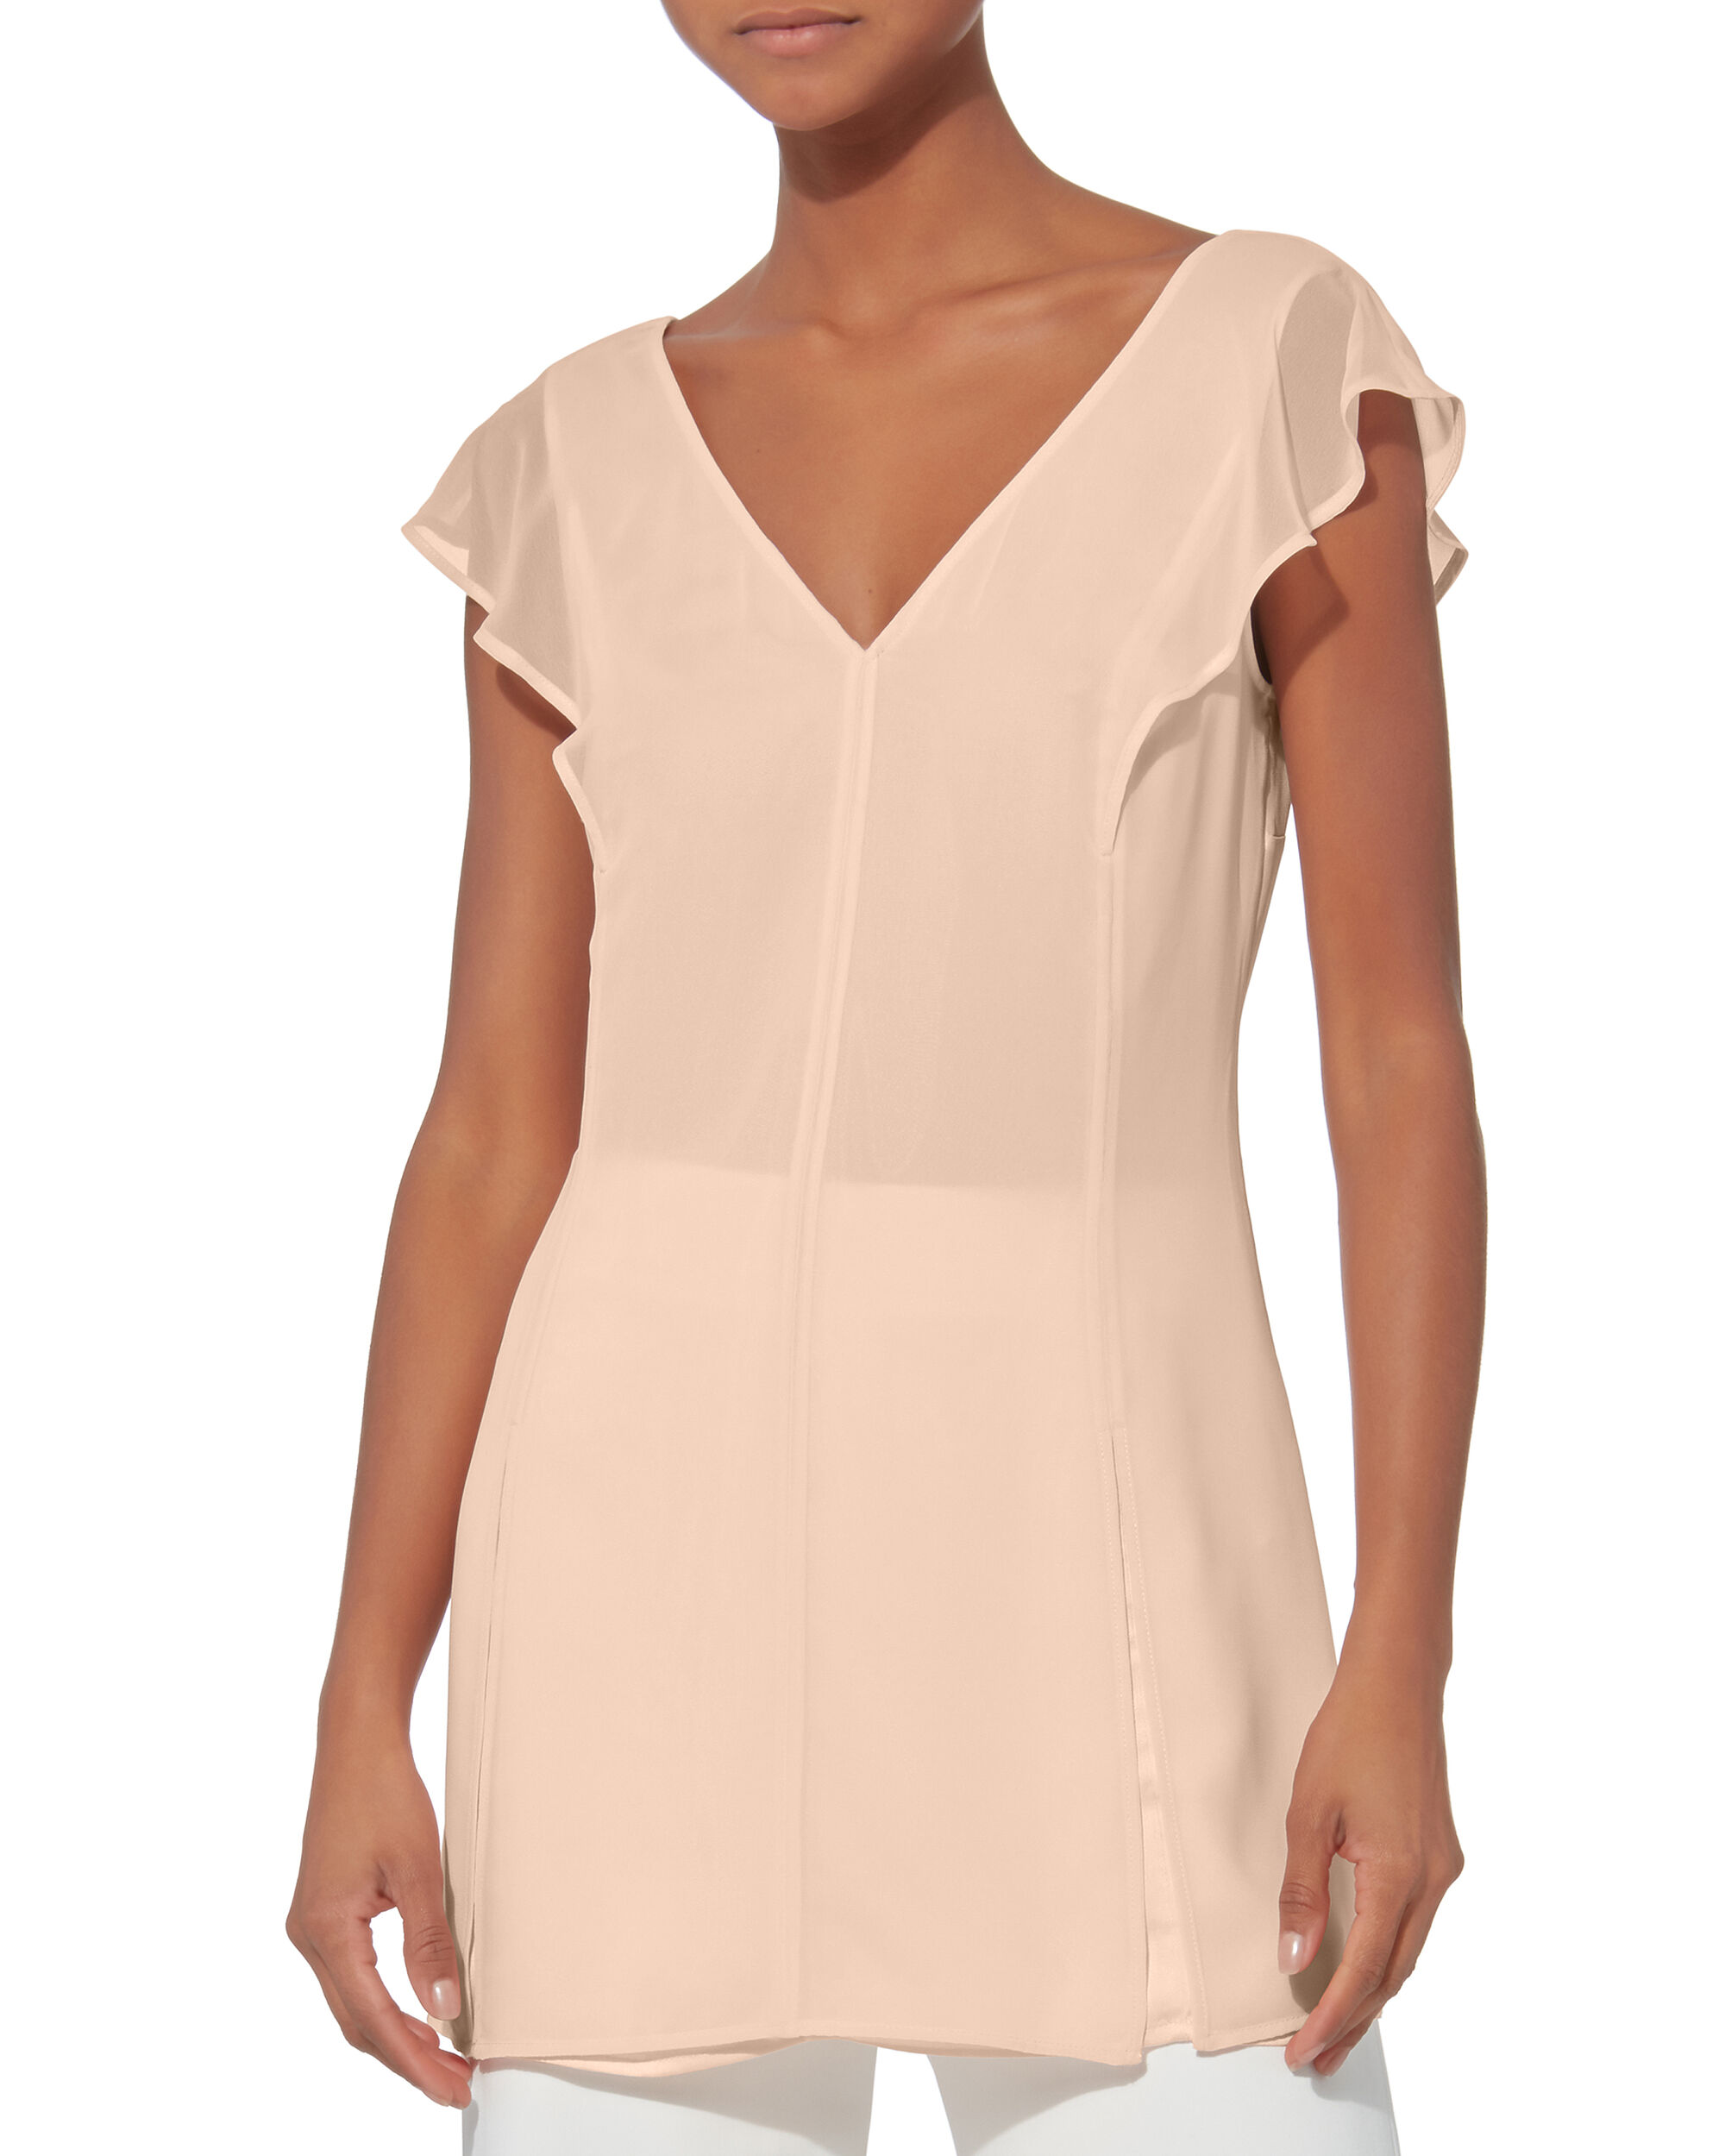 Layered Ruffle Slip Top, BLUSH, hi-res